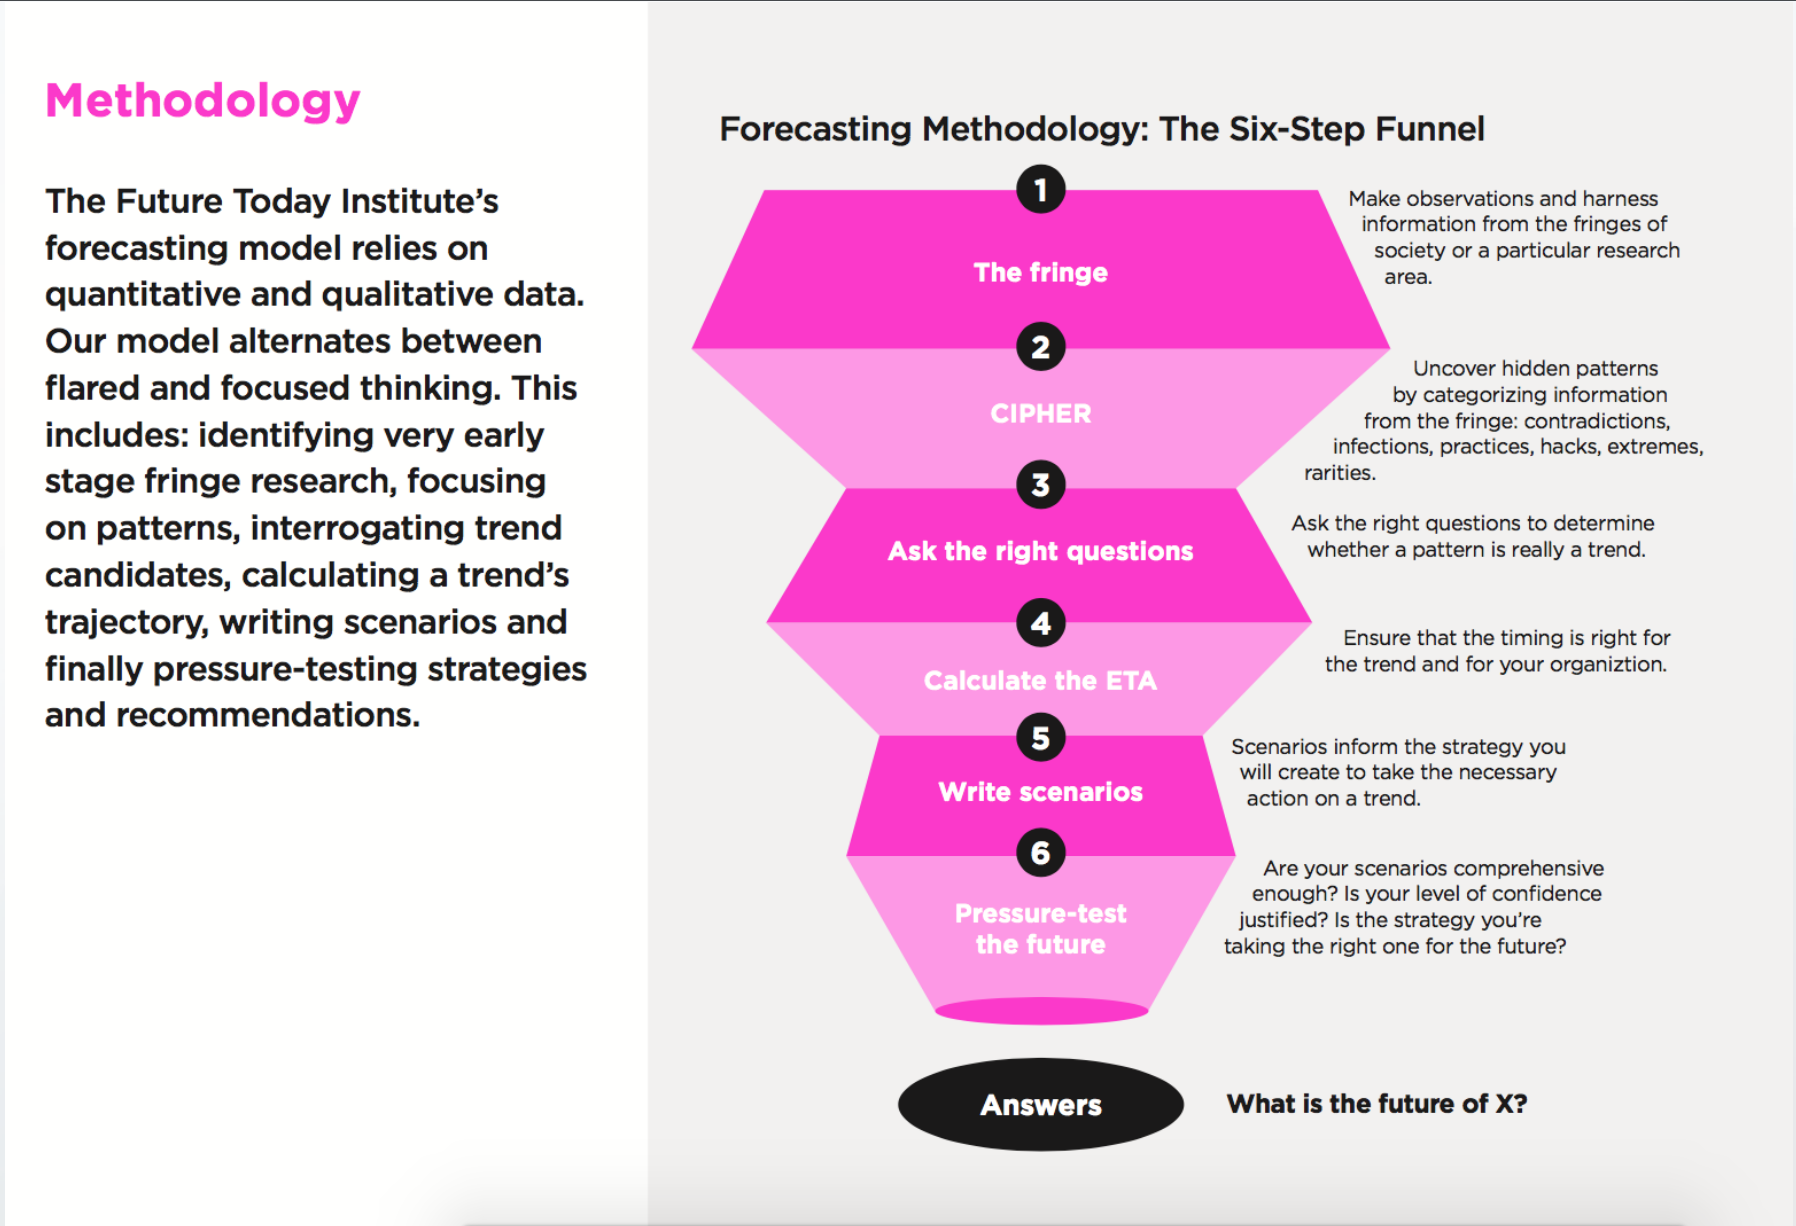 Methodology:  The Future Today Institute's forecasting model relies on quantitative and qualitative data. Our model alternates between flared and focused thinking. This includes: identifying very early stage fringe research, focusing on patterns, interrogating trend candidates, calculating a trend's trajectory, writing scenarios, and finally pressure-testing strategies and recommendations.